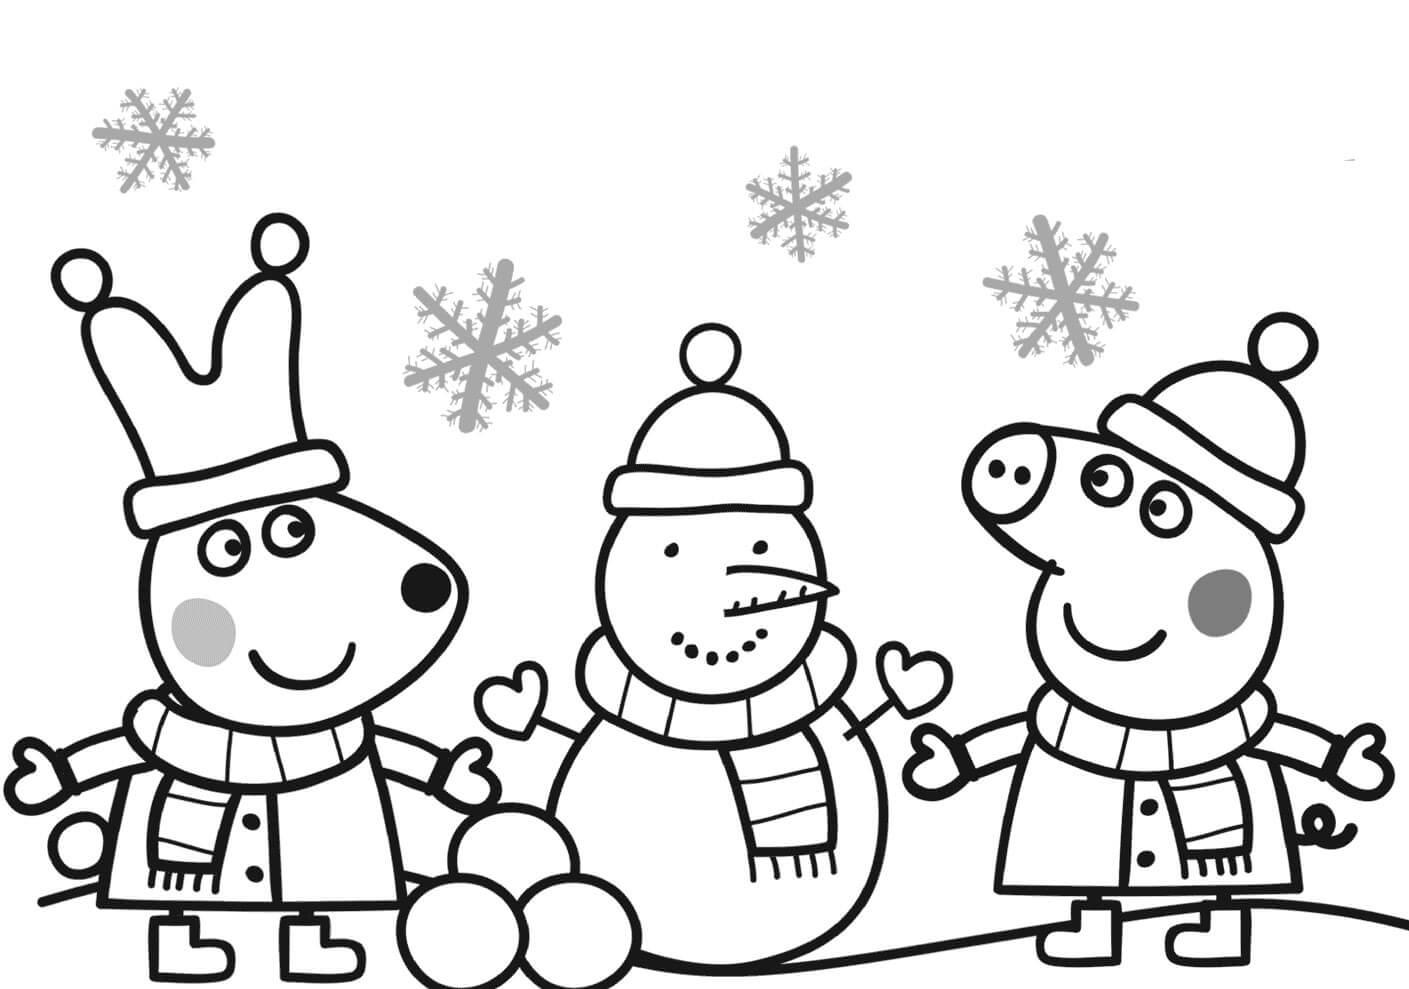 peppa pig pictures for colouring 30 printable peppa pig coloring pages you won39t find anywhere for pig peppa colouring pictures